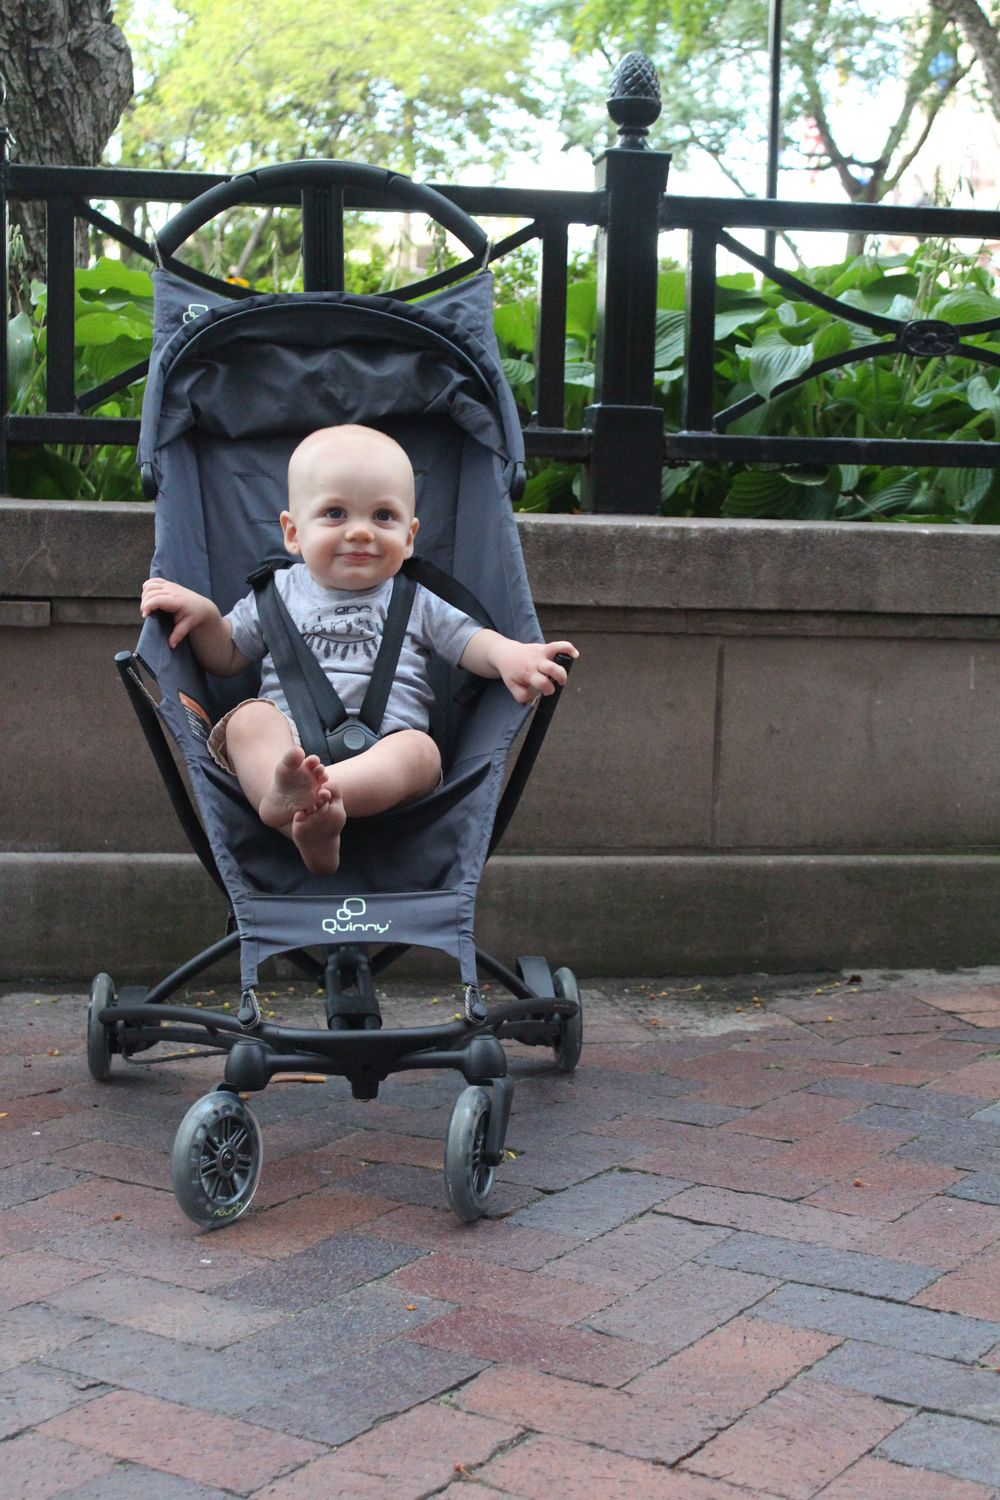 Quinny Yezz Stroller Review | Baby Gear | Pinterest | Project ...